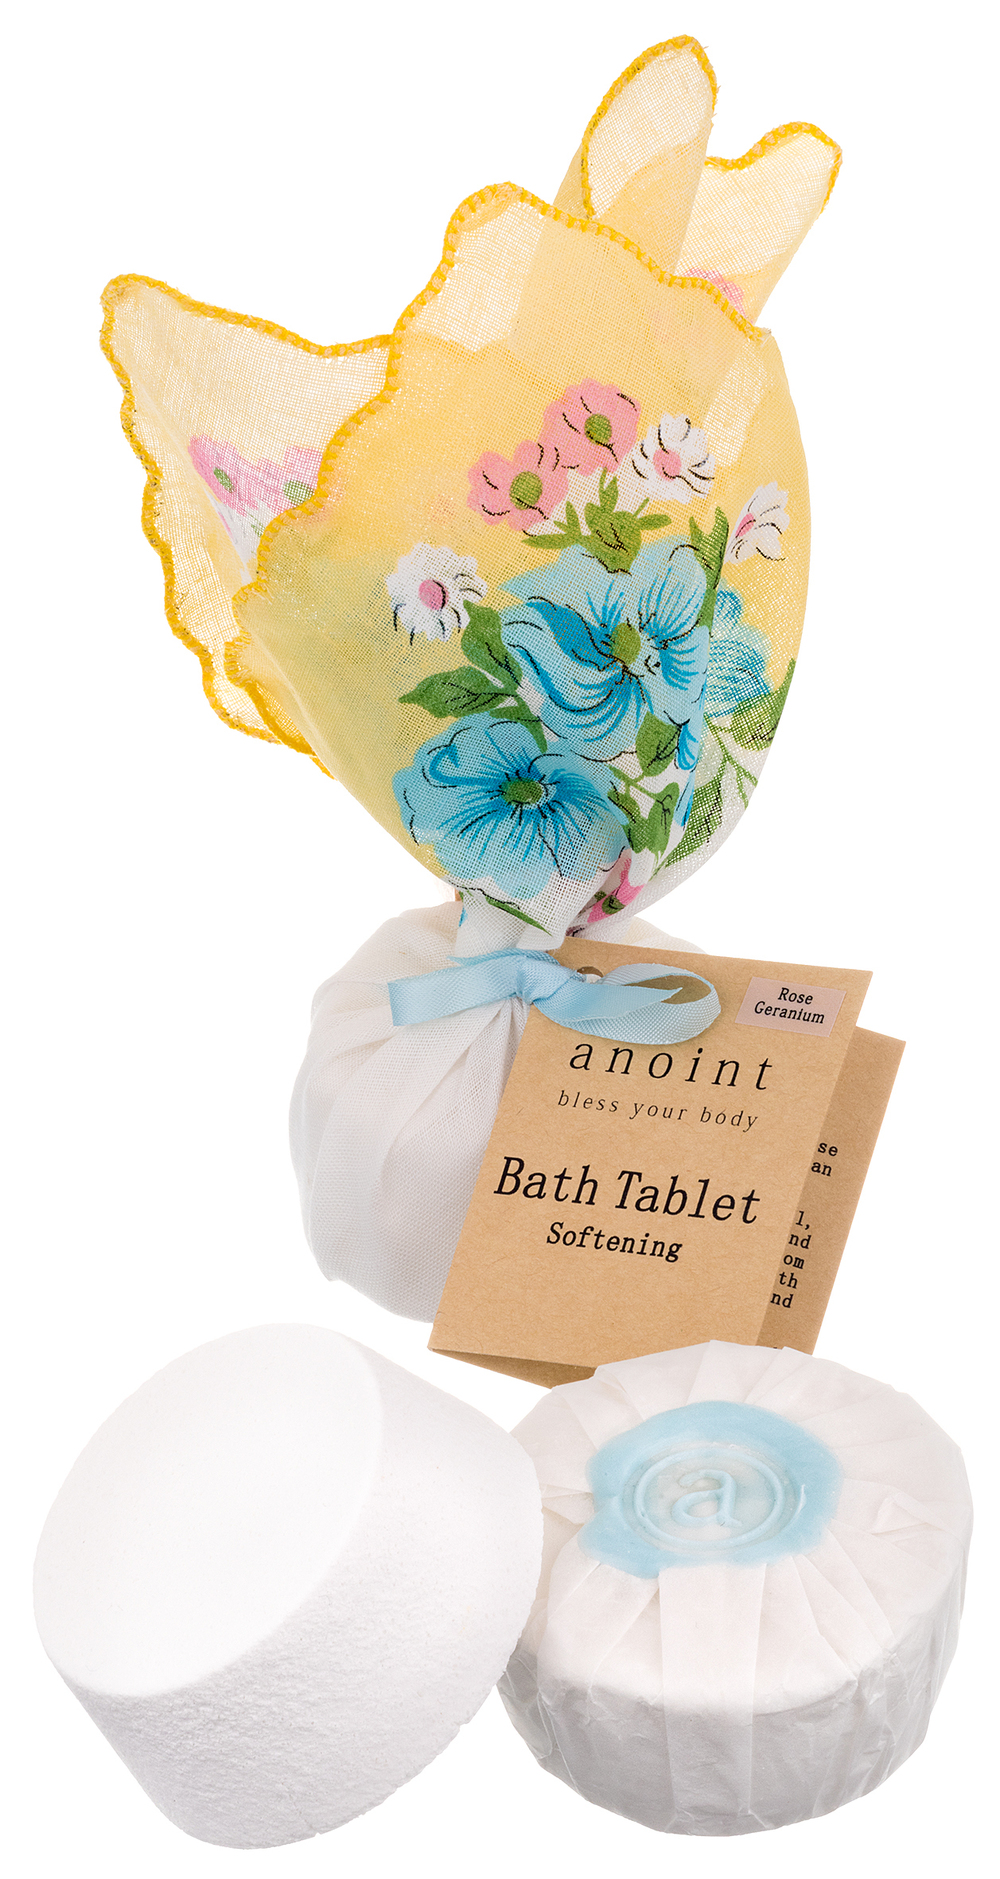 Anoint_Bath Tablet & Handkerchief.jpg